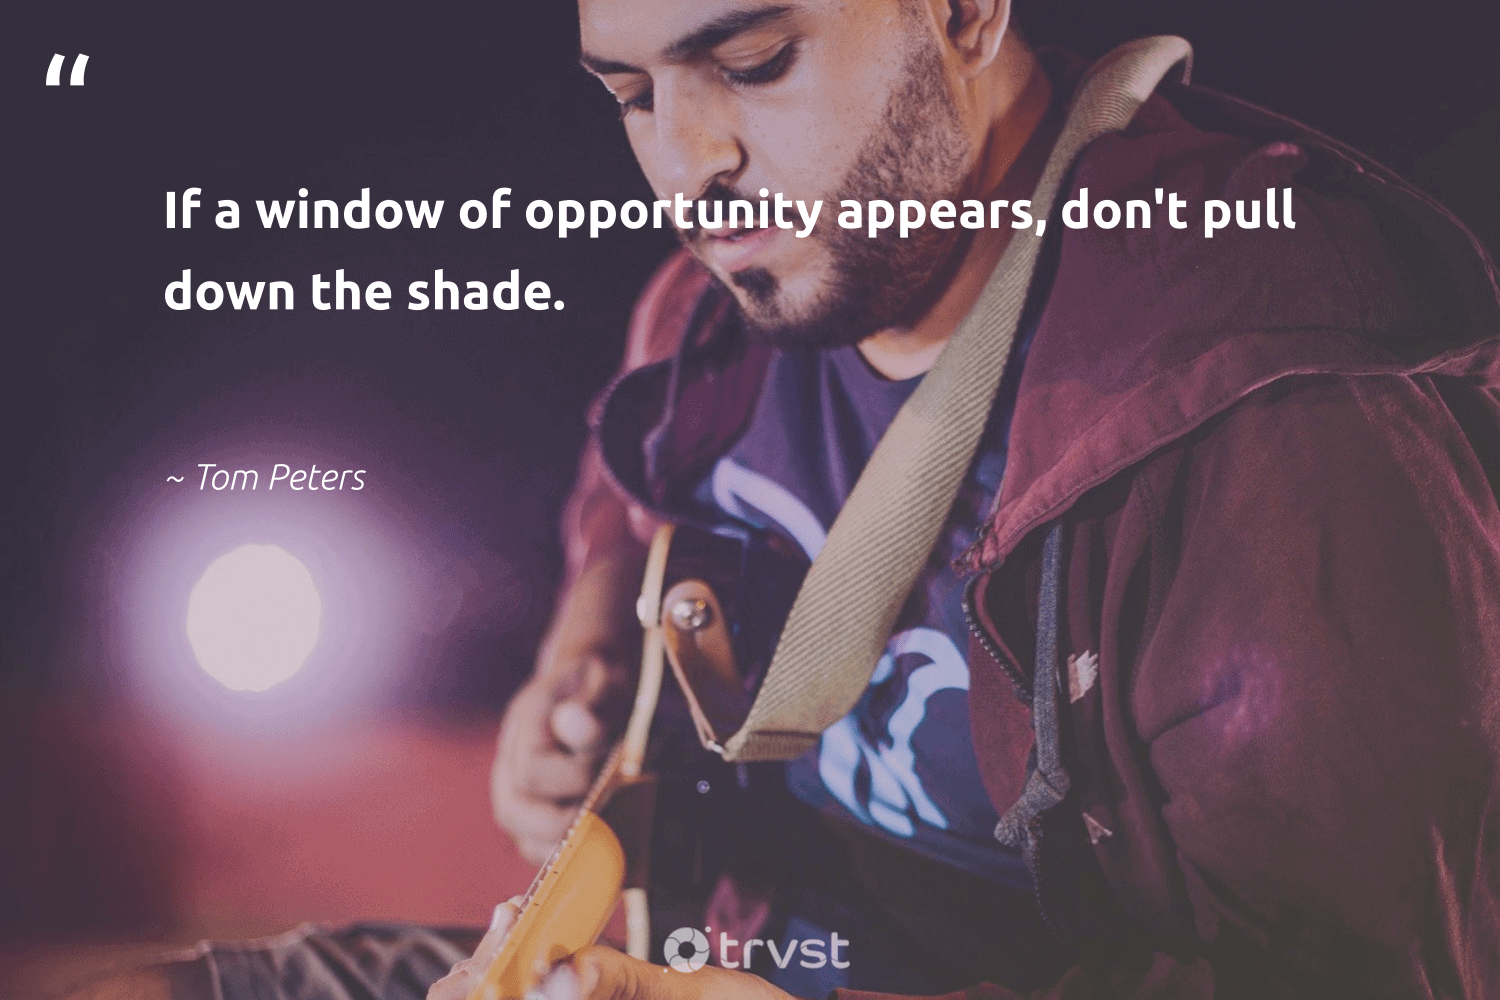 """""""If a window of opportunity appears, don't pull down the shade.""""  - Tom Peters #trvst #quotes #begreat #impact #softskills #socialchange #futureofwork #bethechange #nevergiveup #beinspired #dotherightthing #socialimpact"""